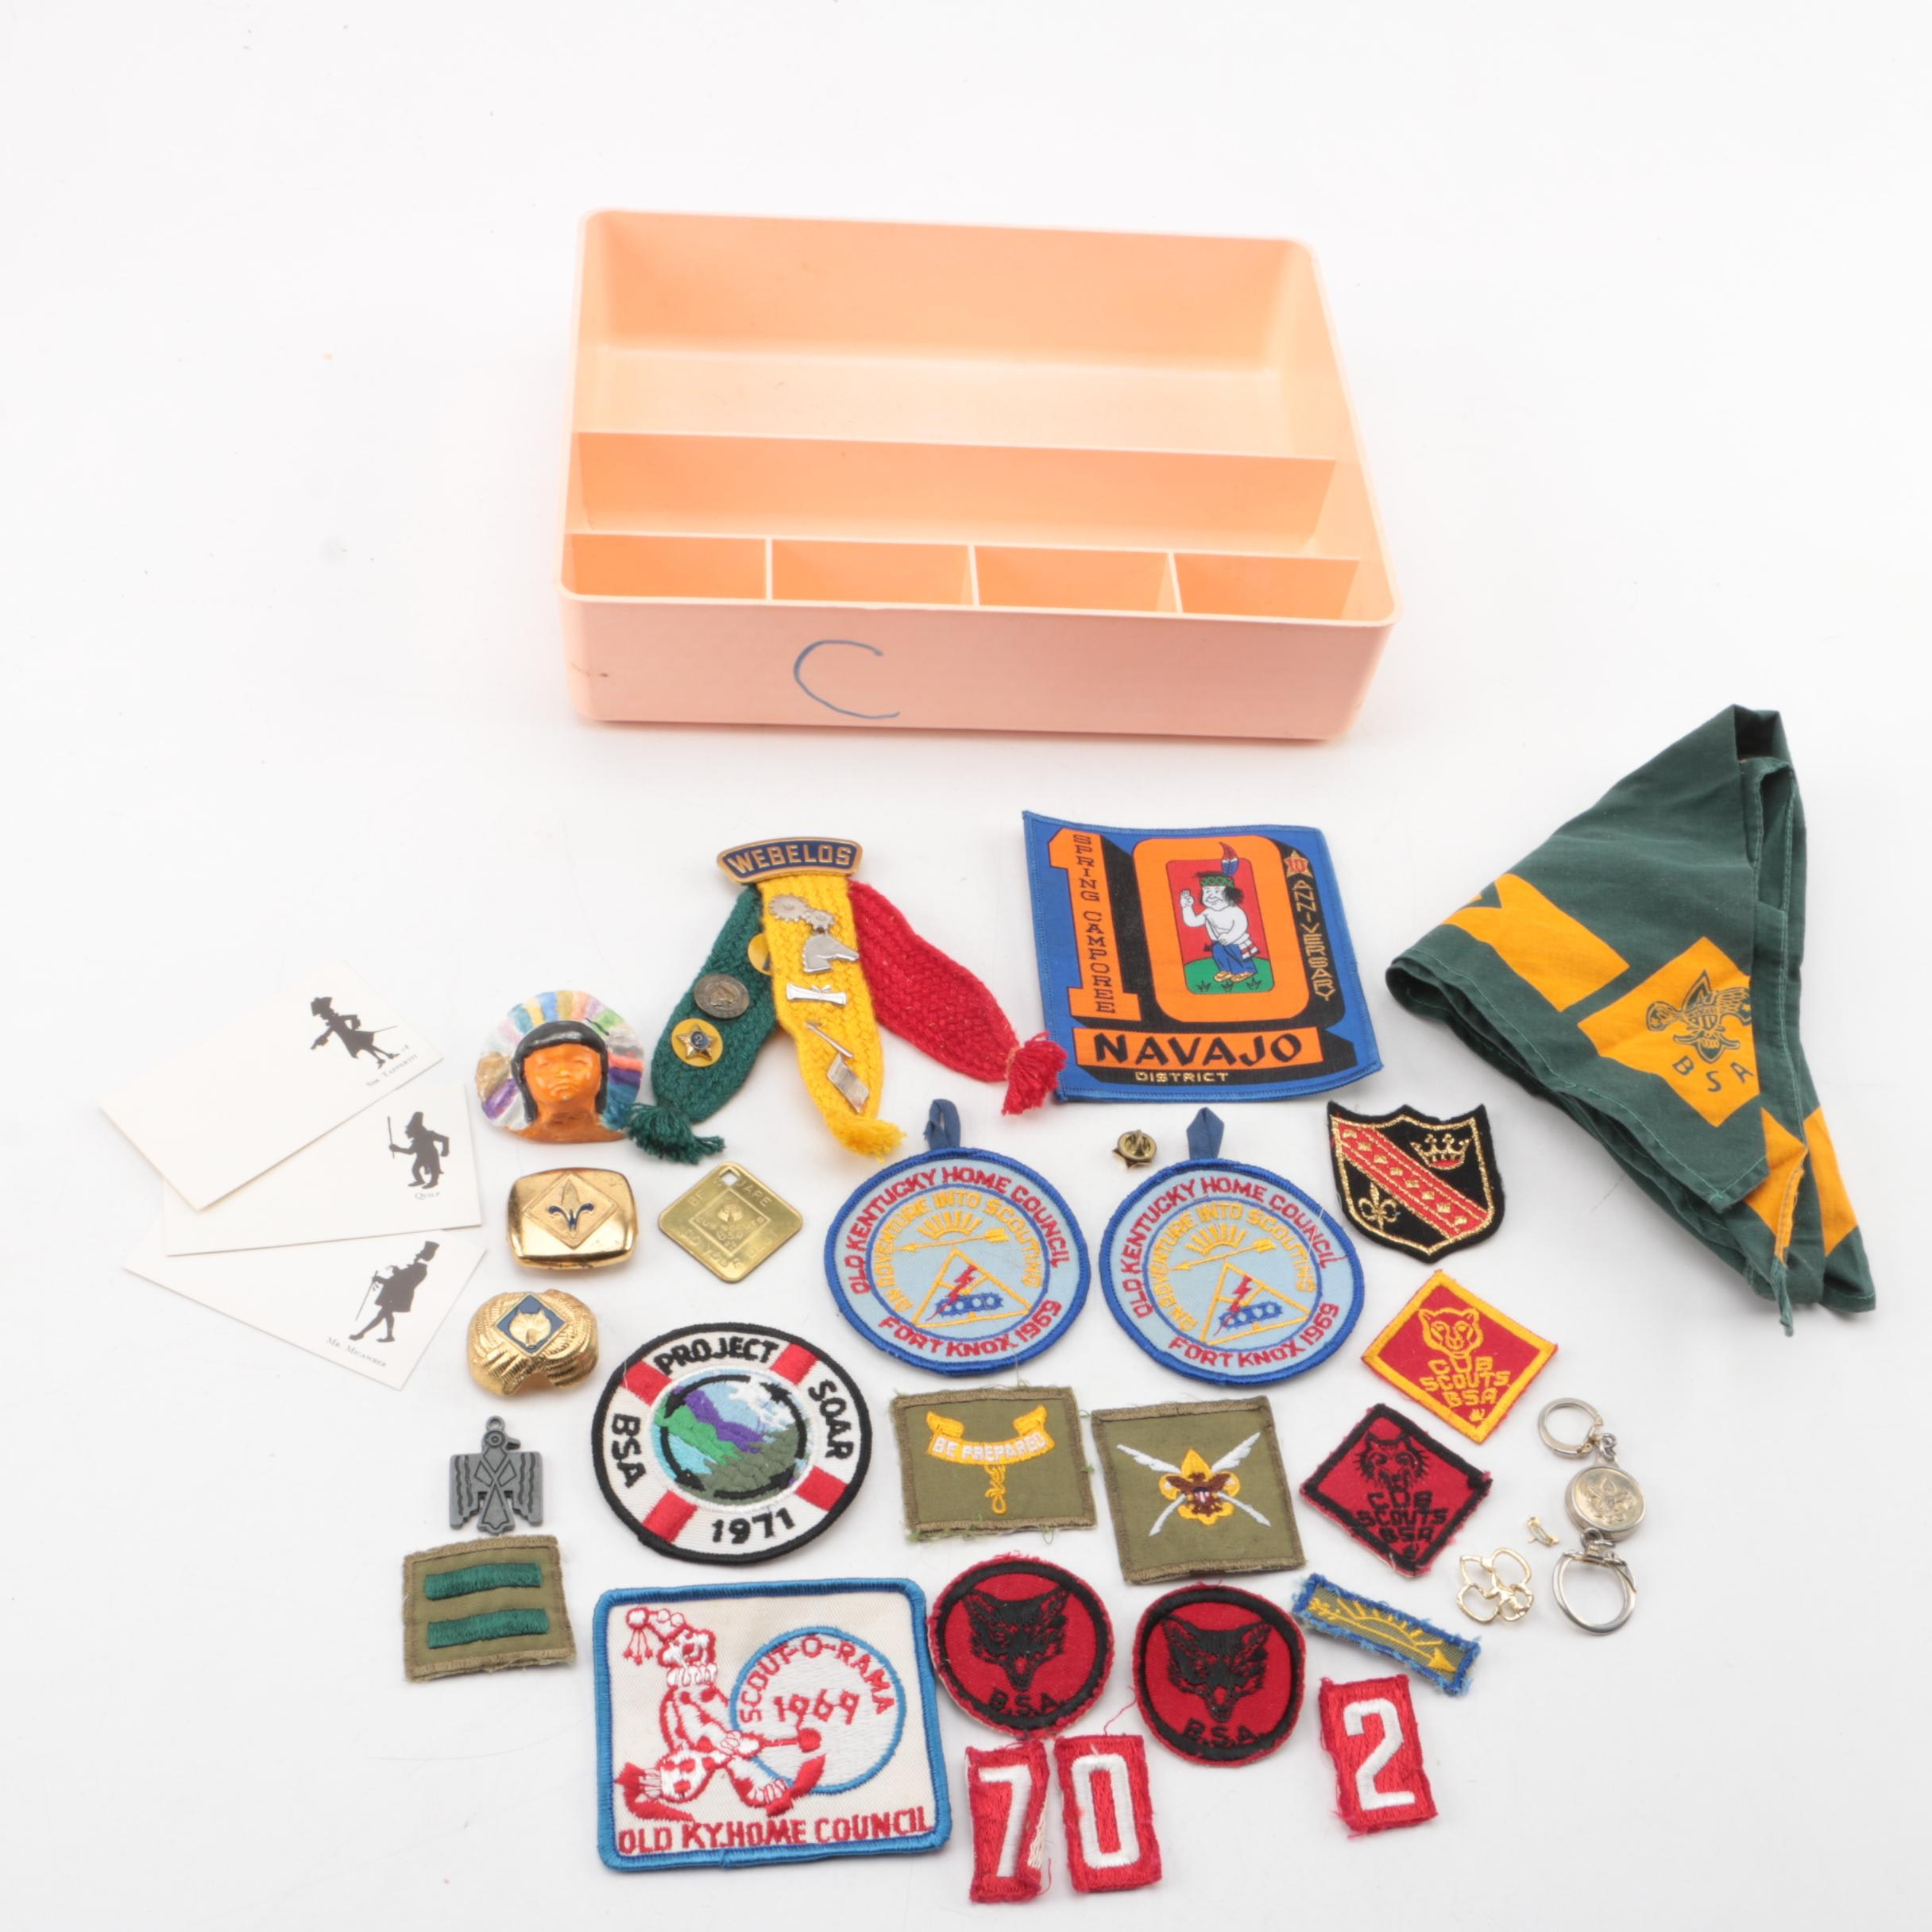 Vintage Cub Scout and Boy Scout Patches, Pins, and Memorabilia